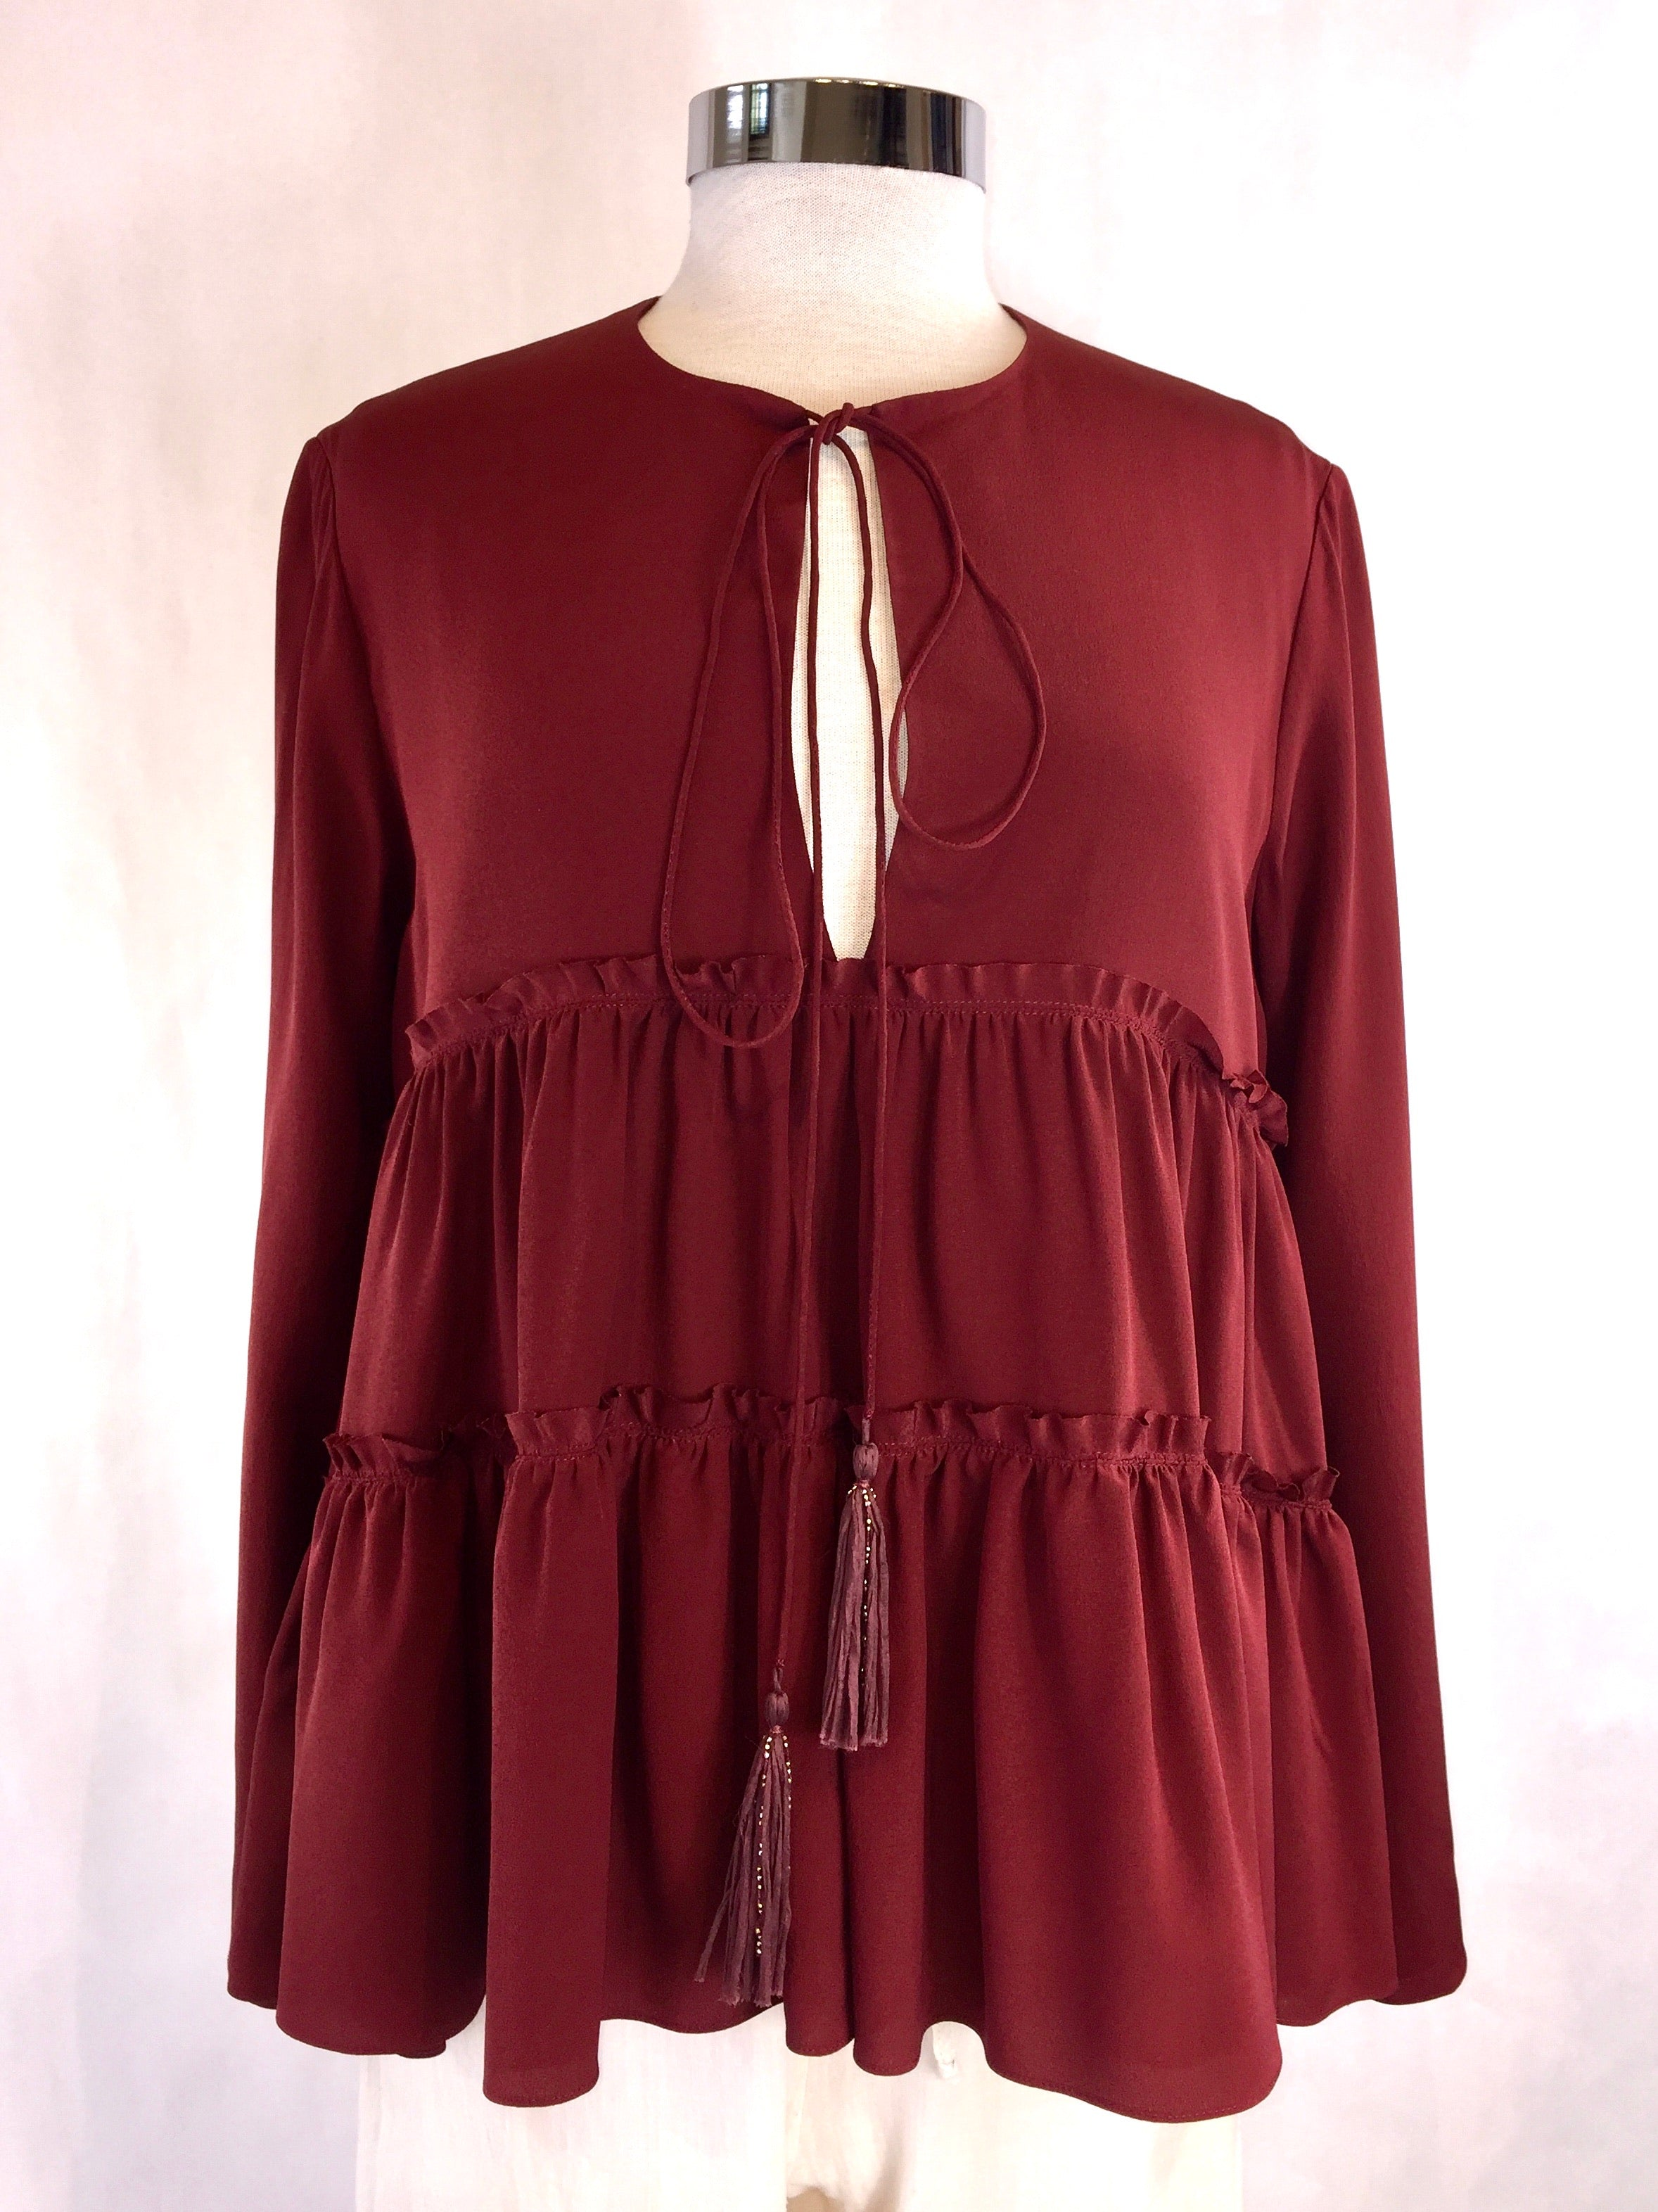 Burgundy Silk Tiered Top